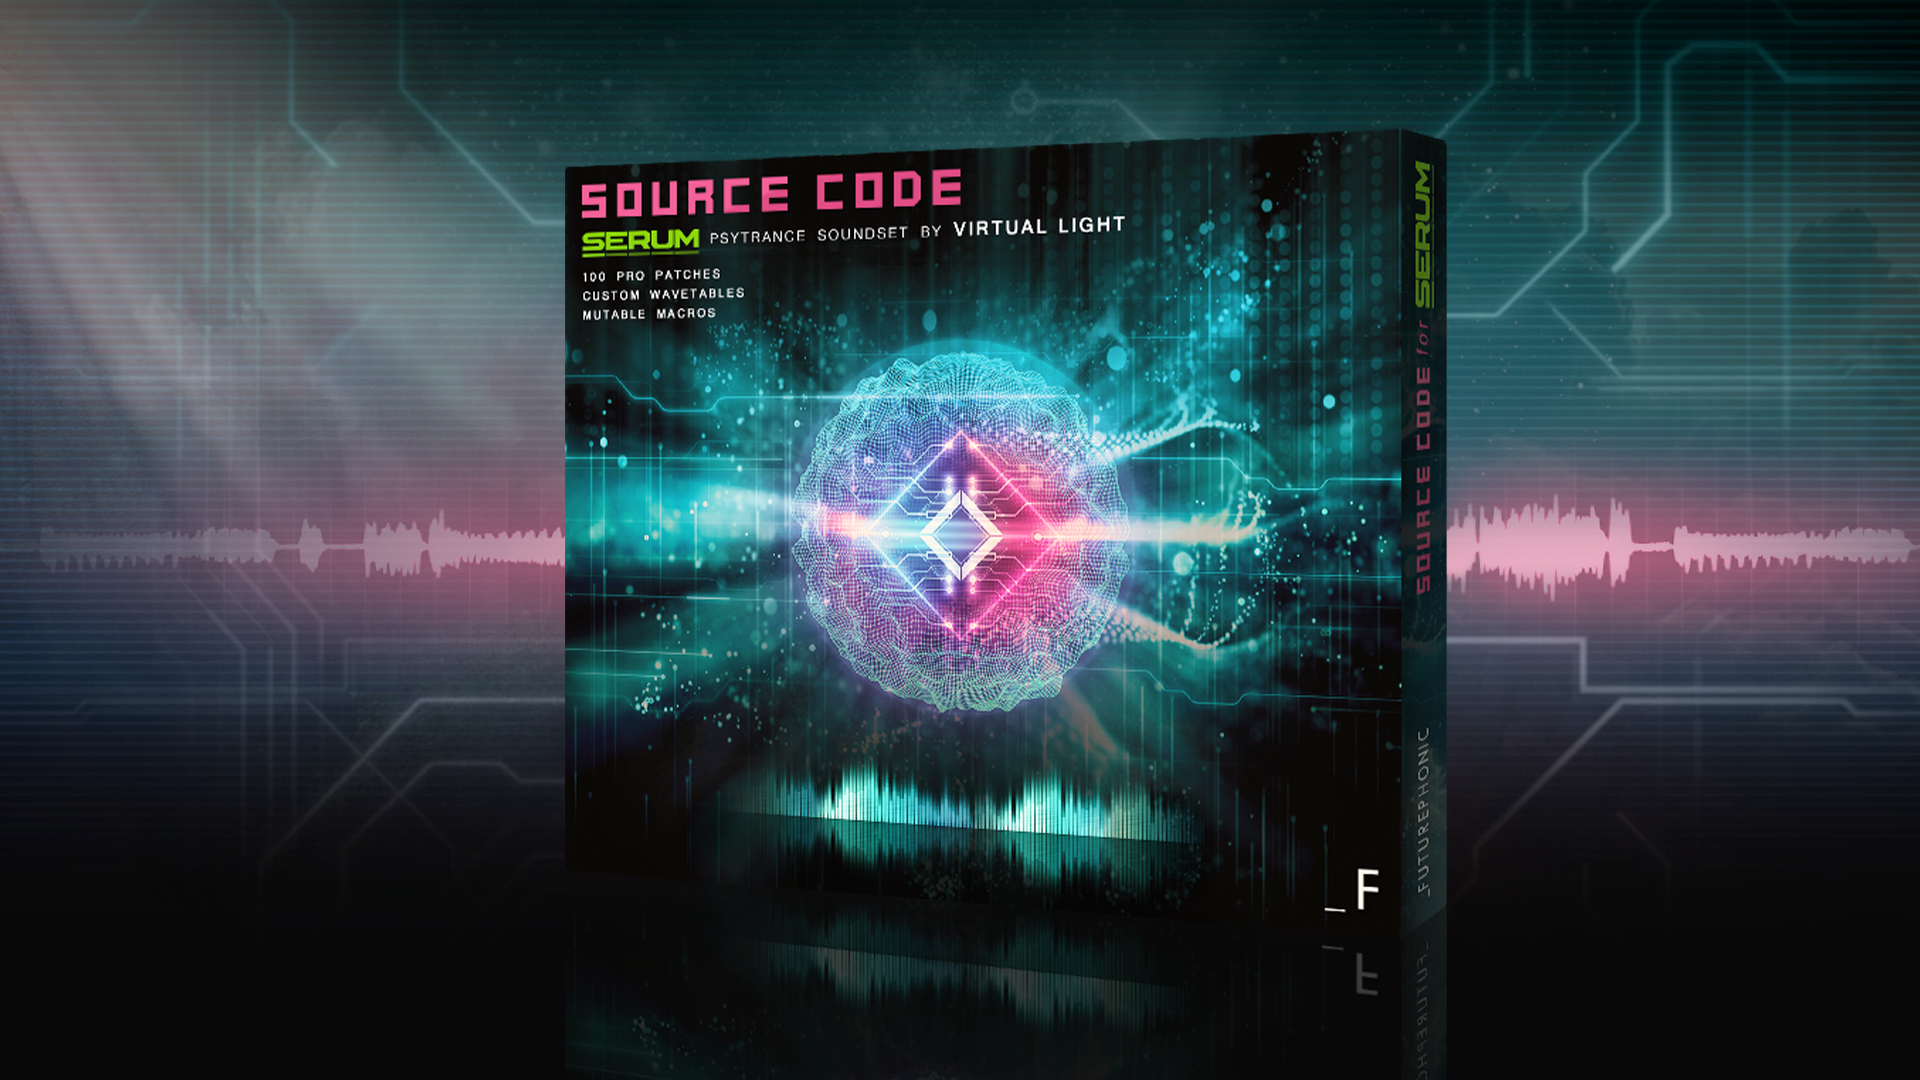 [Source Code] by Virtual Light